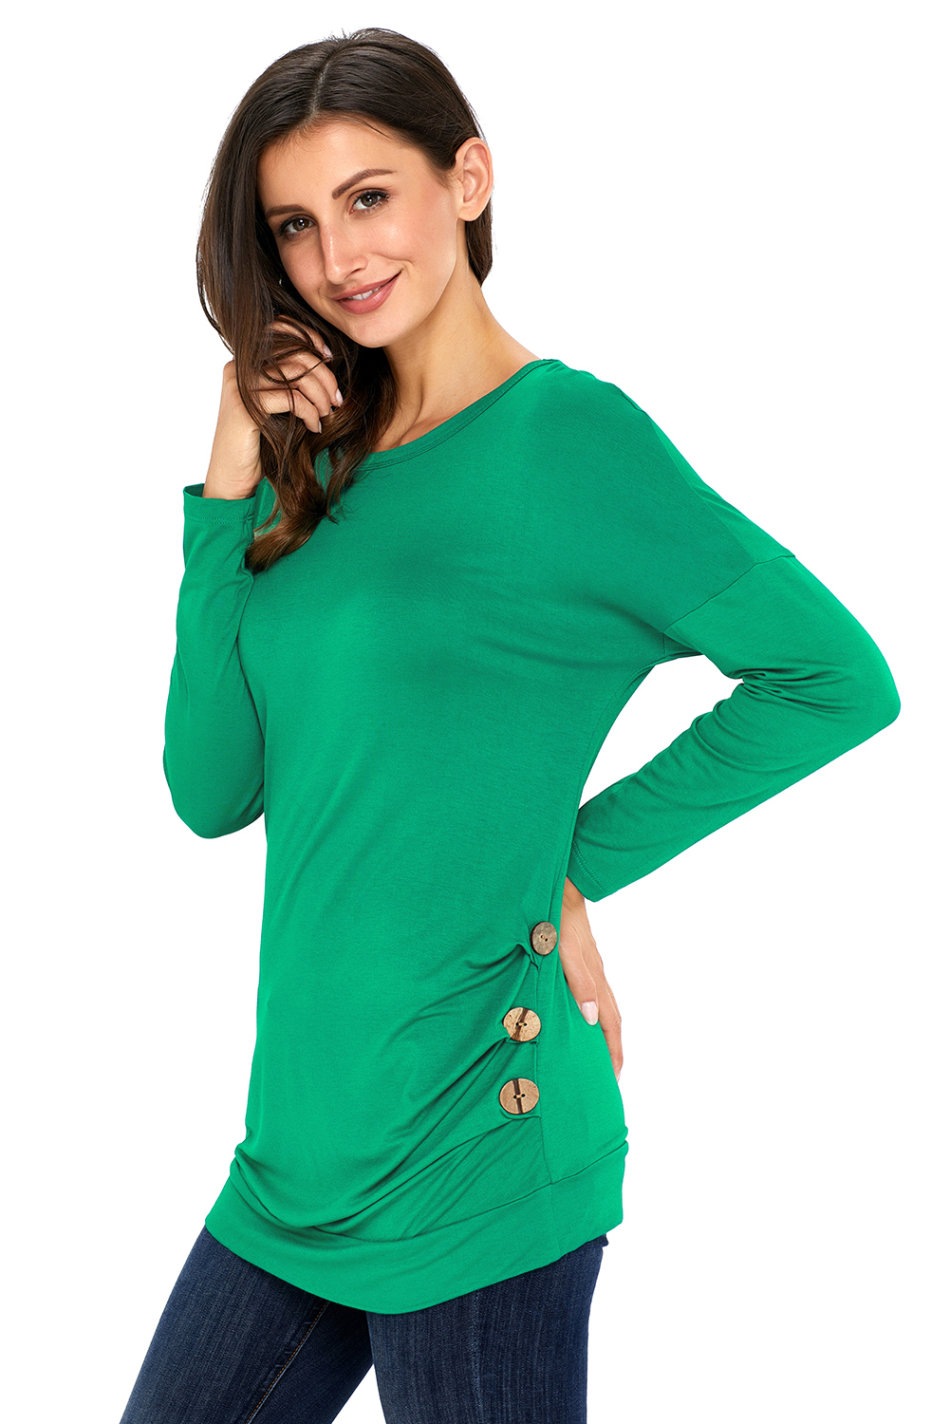 Tops for Women Find women's tops for every occasion at Express, including sweaters, tees & dressy tops that are perfect for a day in the office or a girl's night on the town. On the weekend, stay comfy with hoodies, sweatshirts and casual tops.